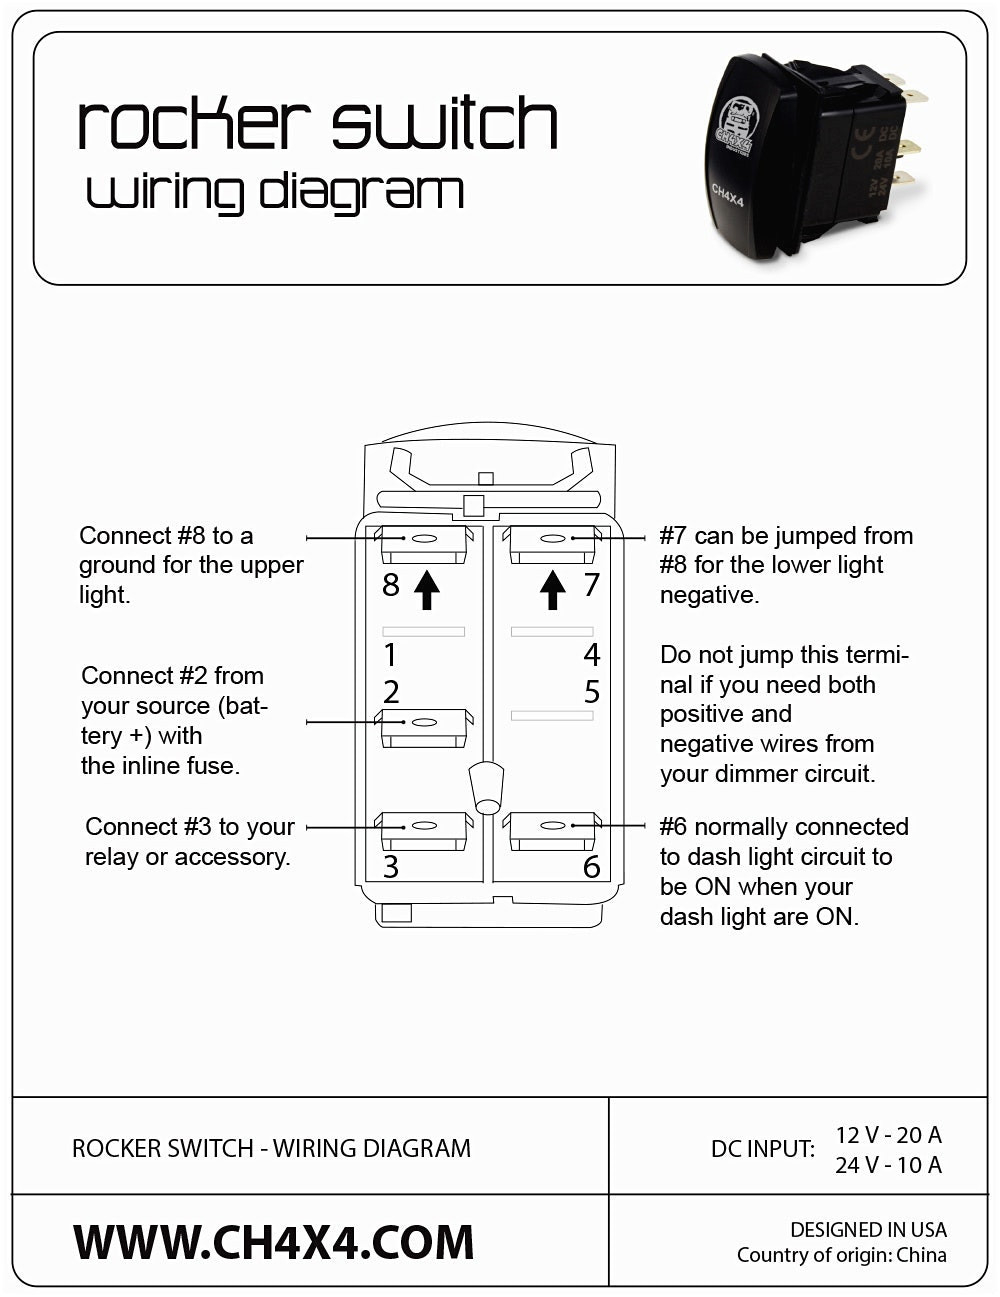 carling technologies rocker switch wiring diagram download for diagram rocker wire switch volvo20470609 #5